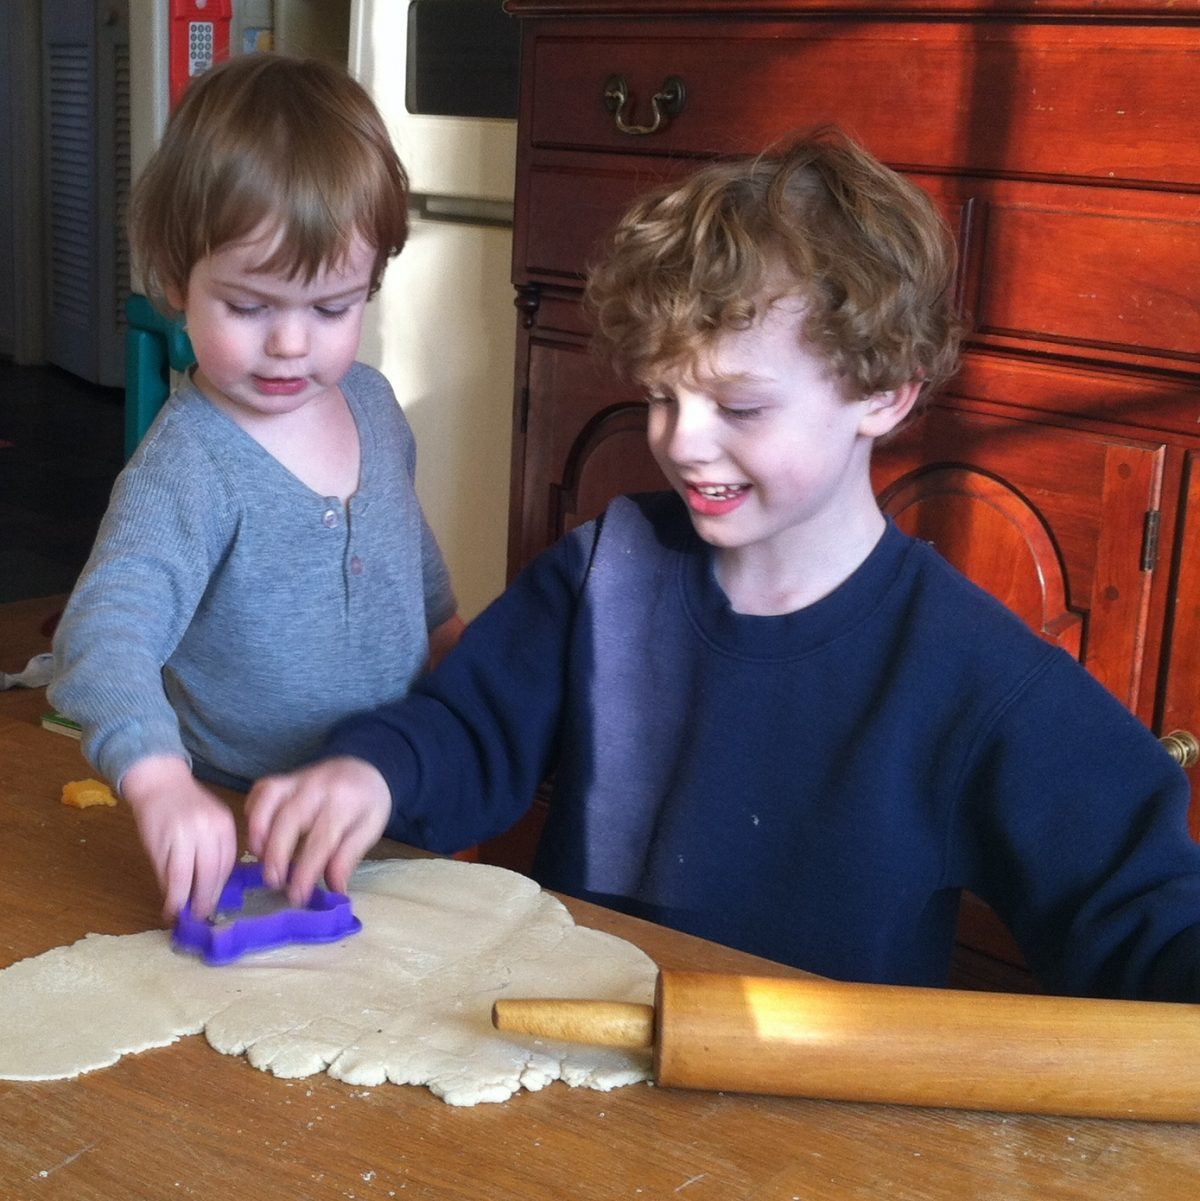 Brothers playing play dough